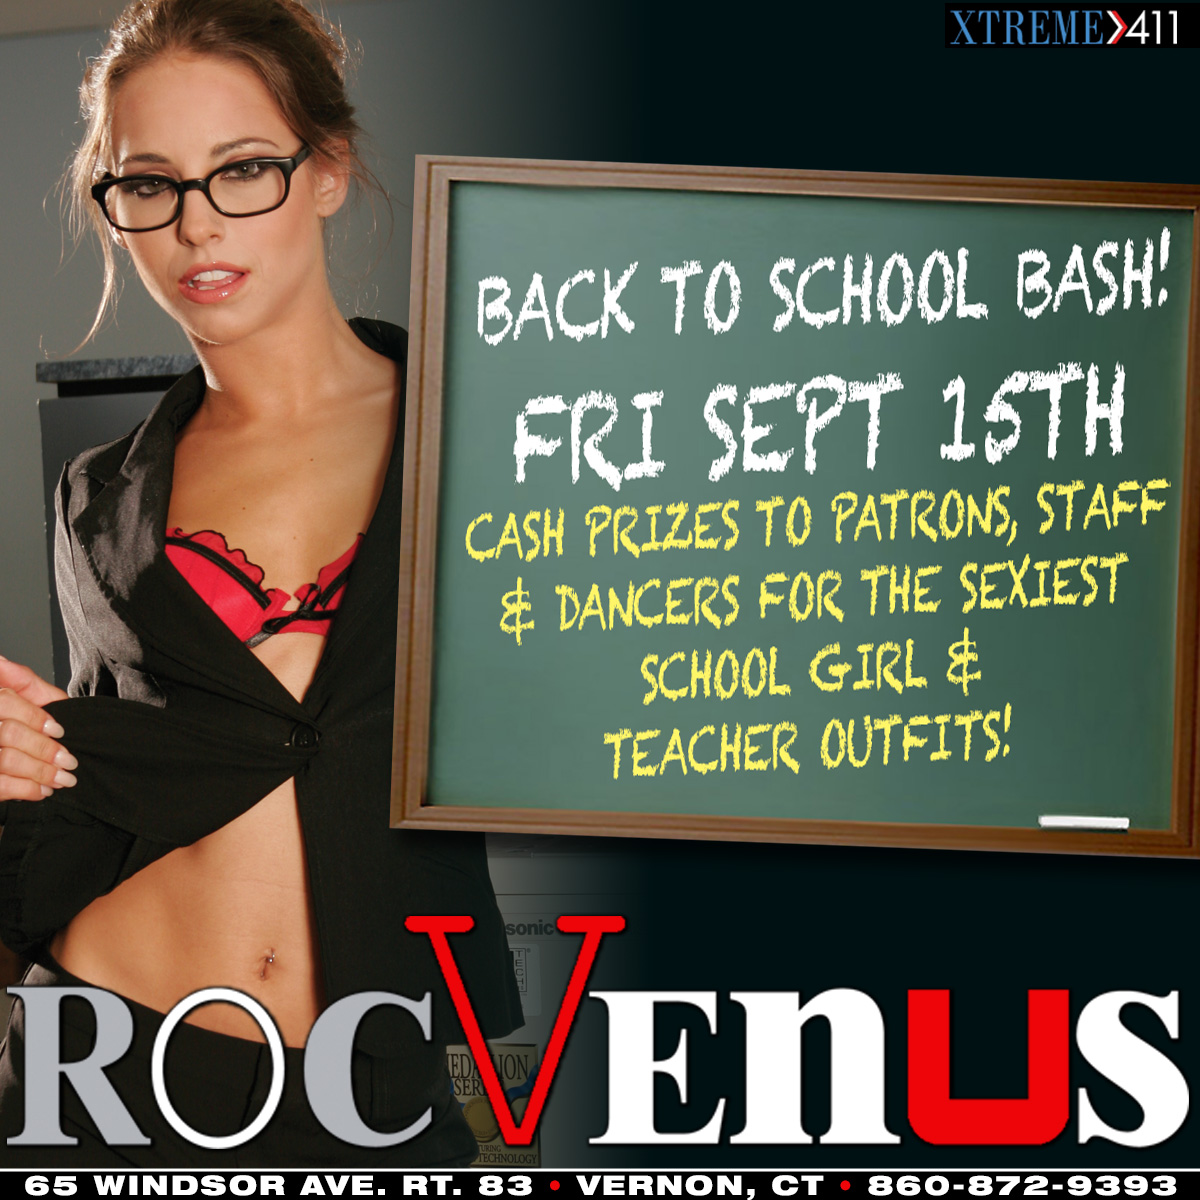 Back to School Bash| RocVenus Strip Club Connecticut